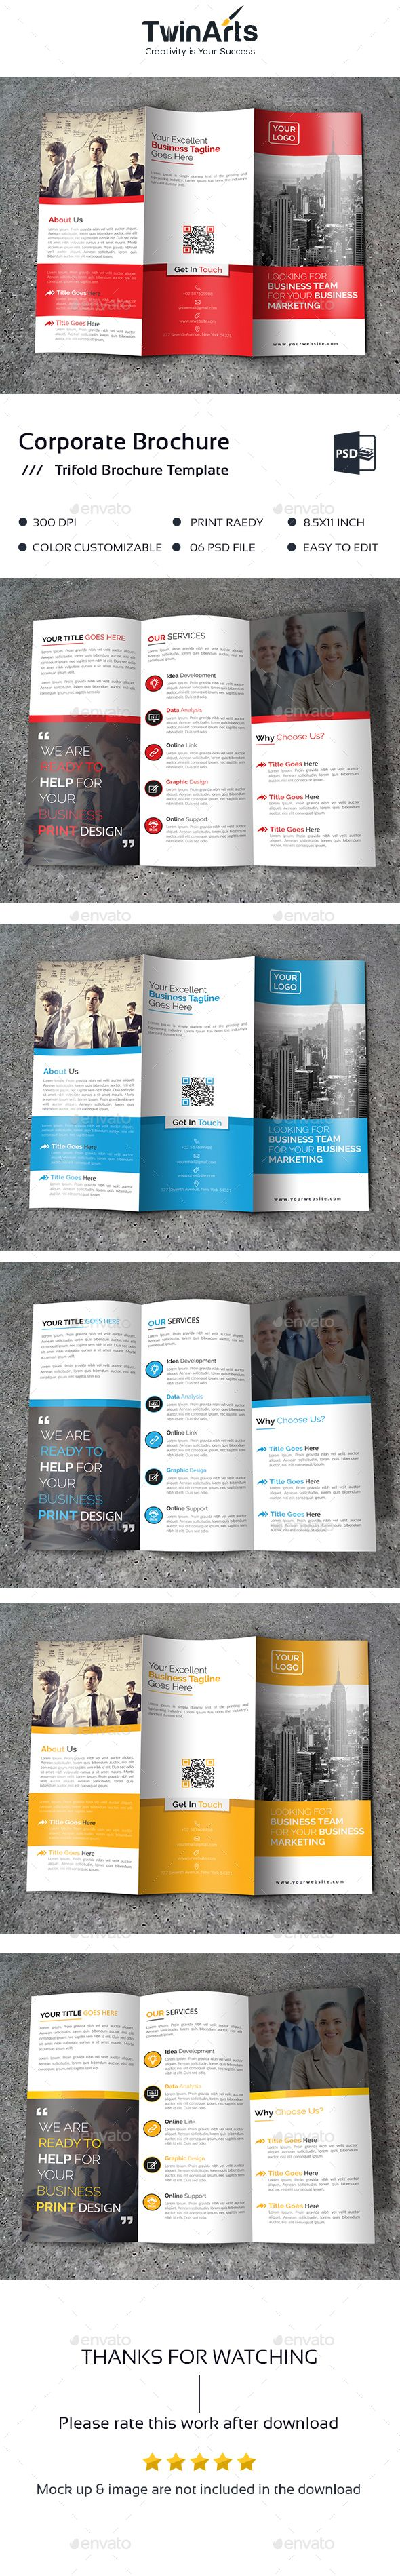 Trifold Brochure Template PSD #download